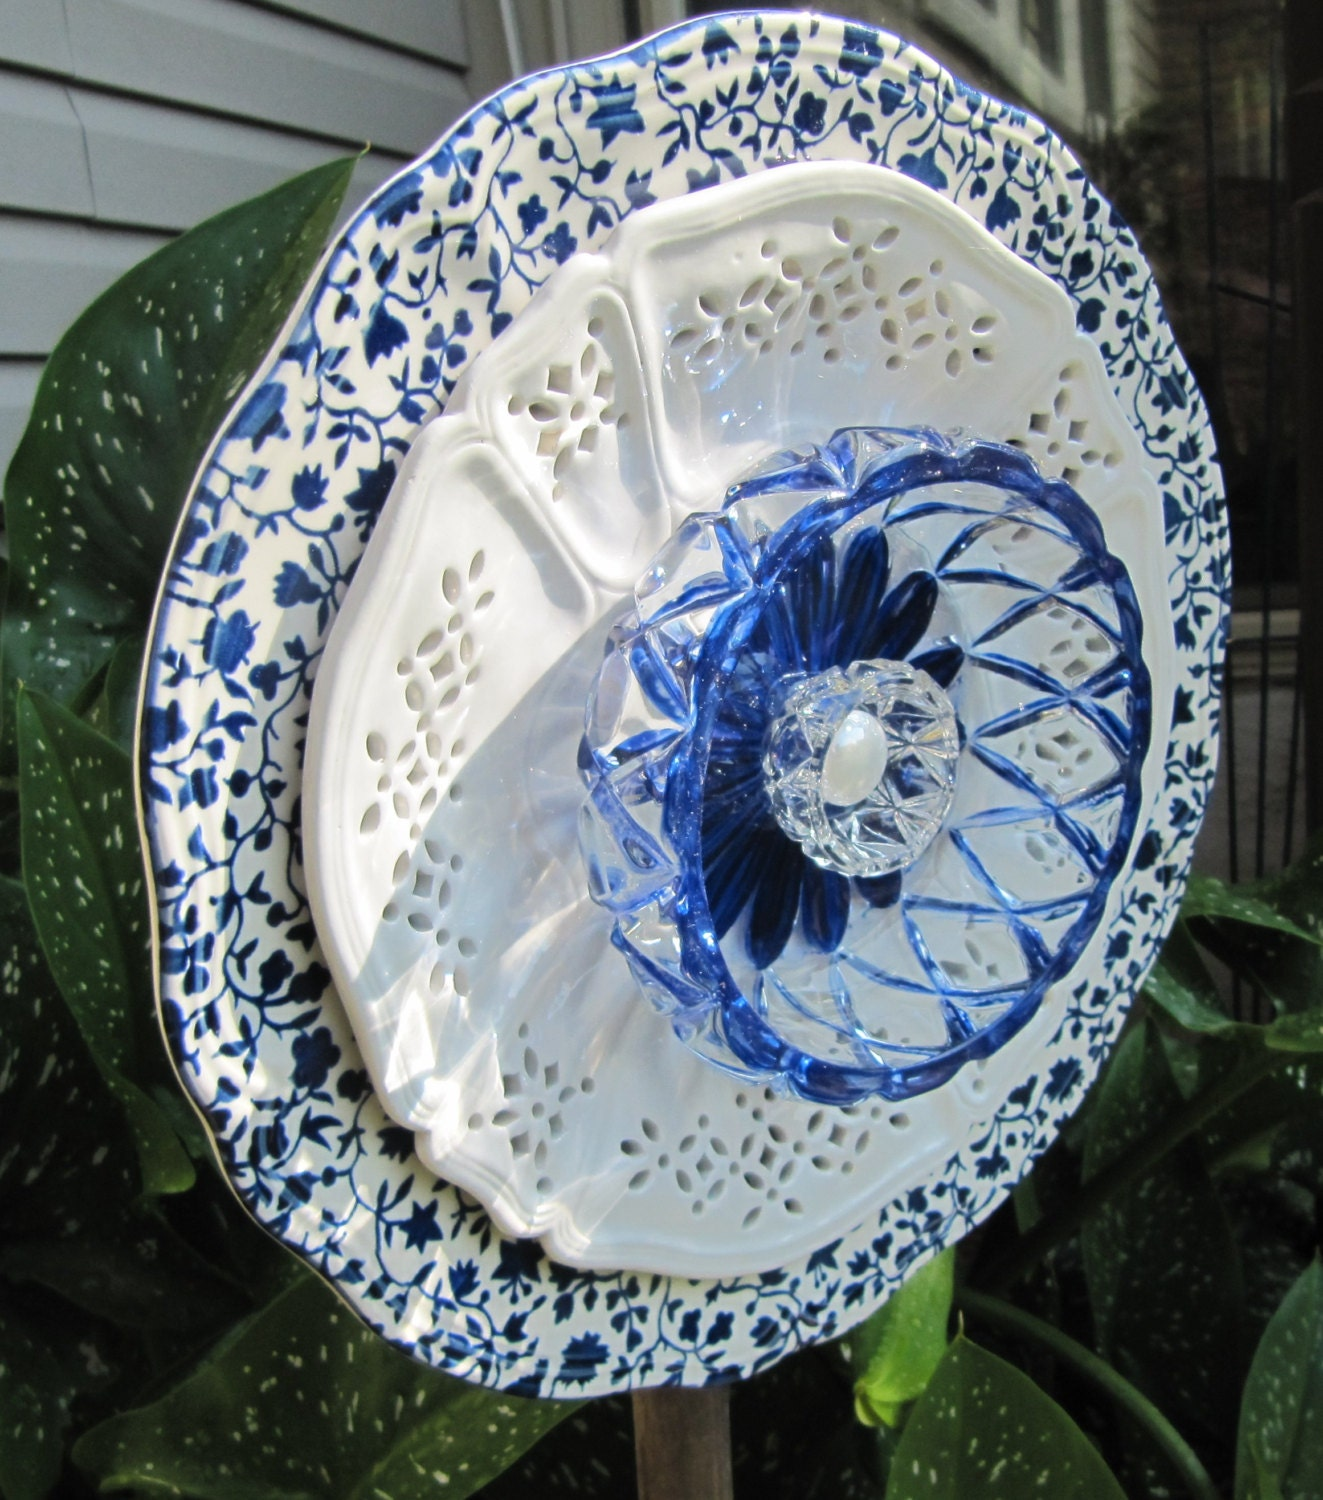 Glass garden flower garden glass ceramic plate flower yard for Flower garden ornaments